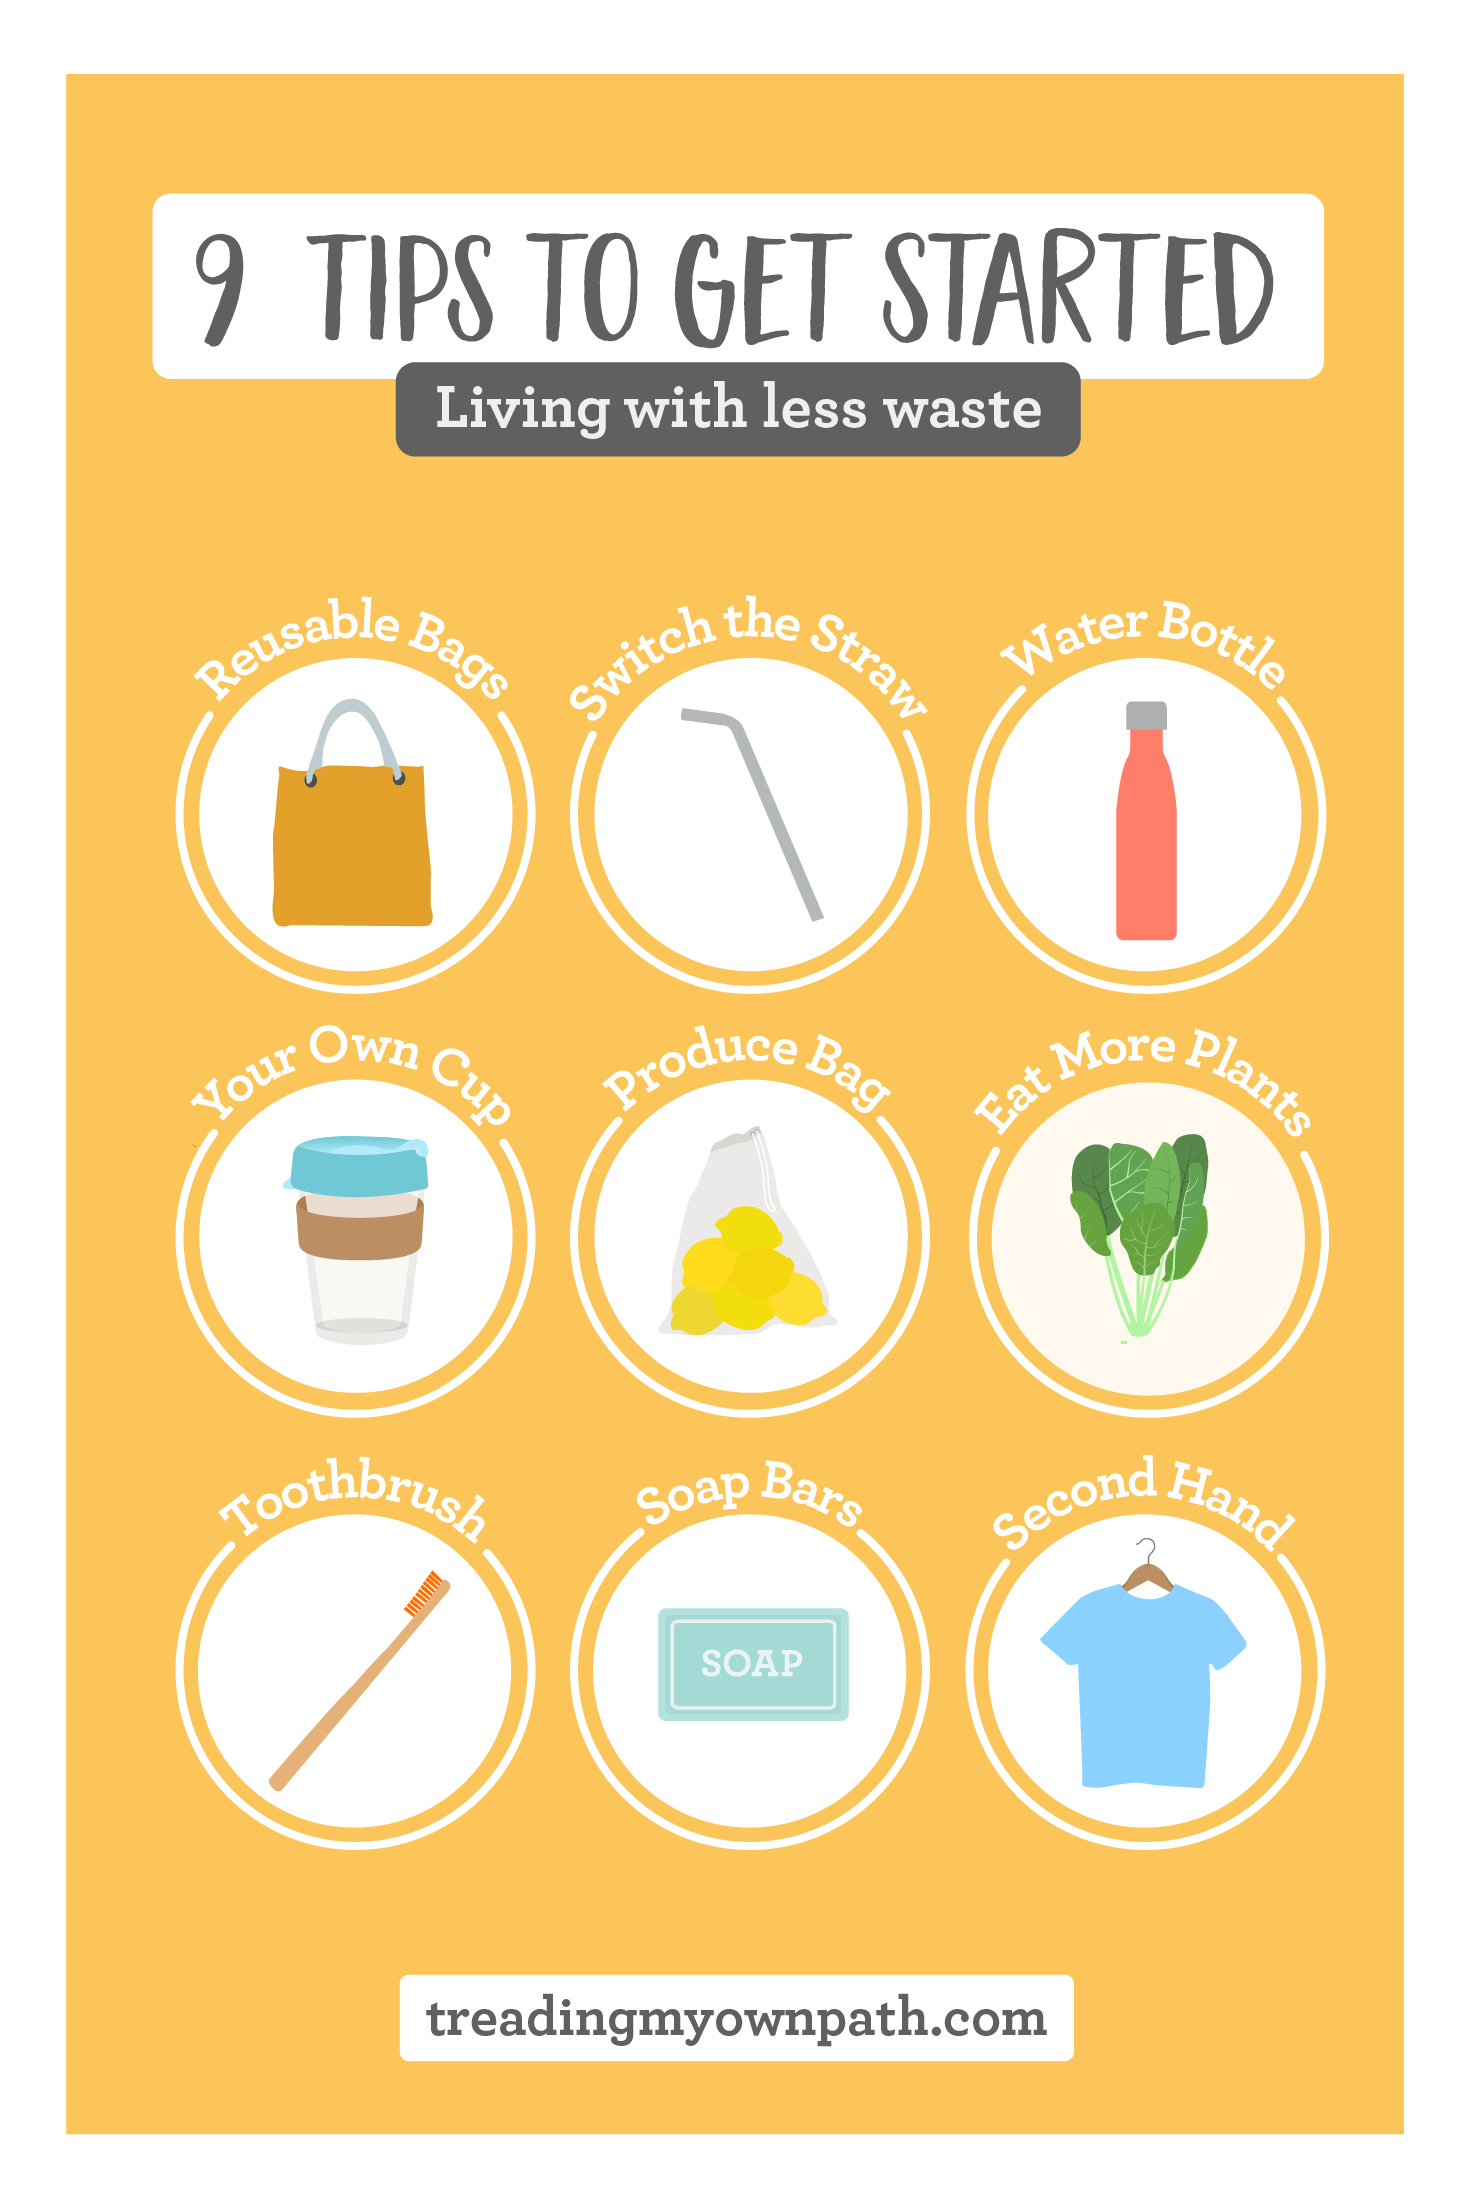 9 tips to get started living with less waste